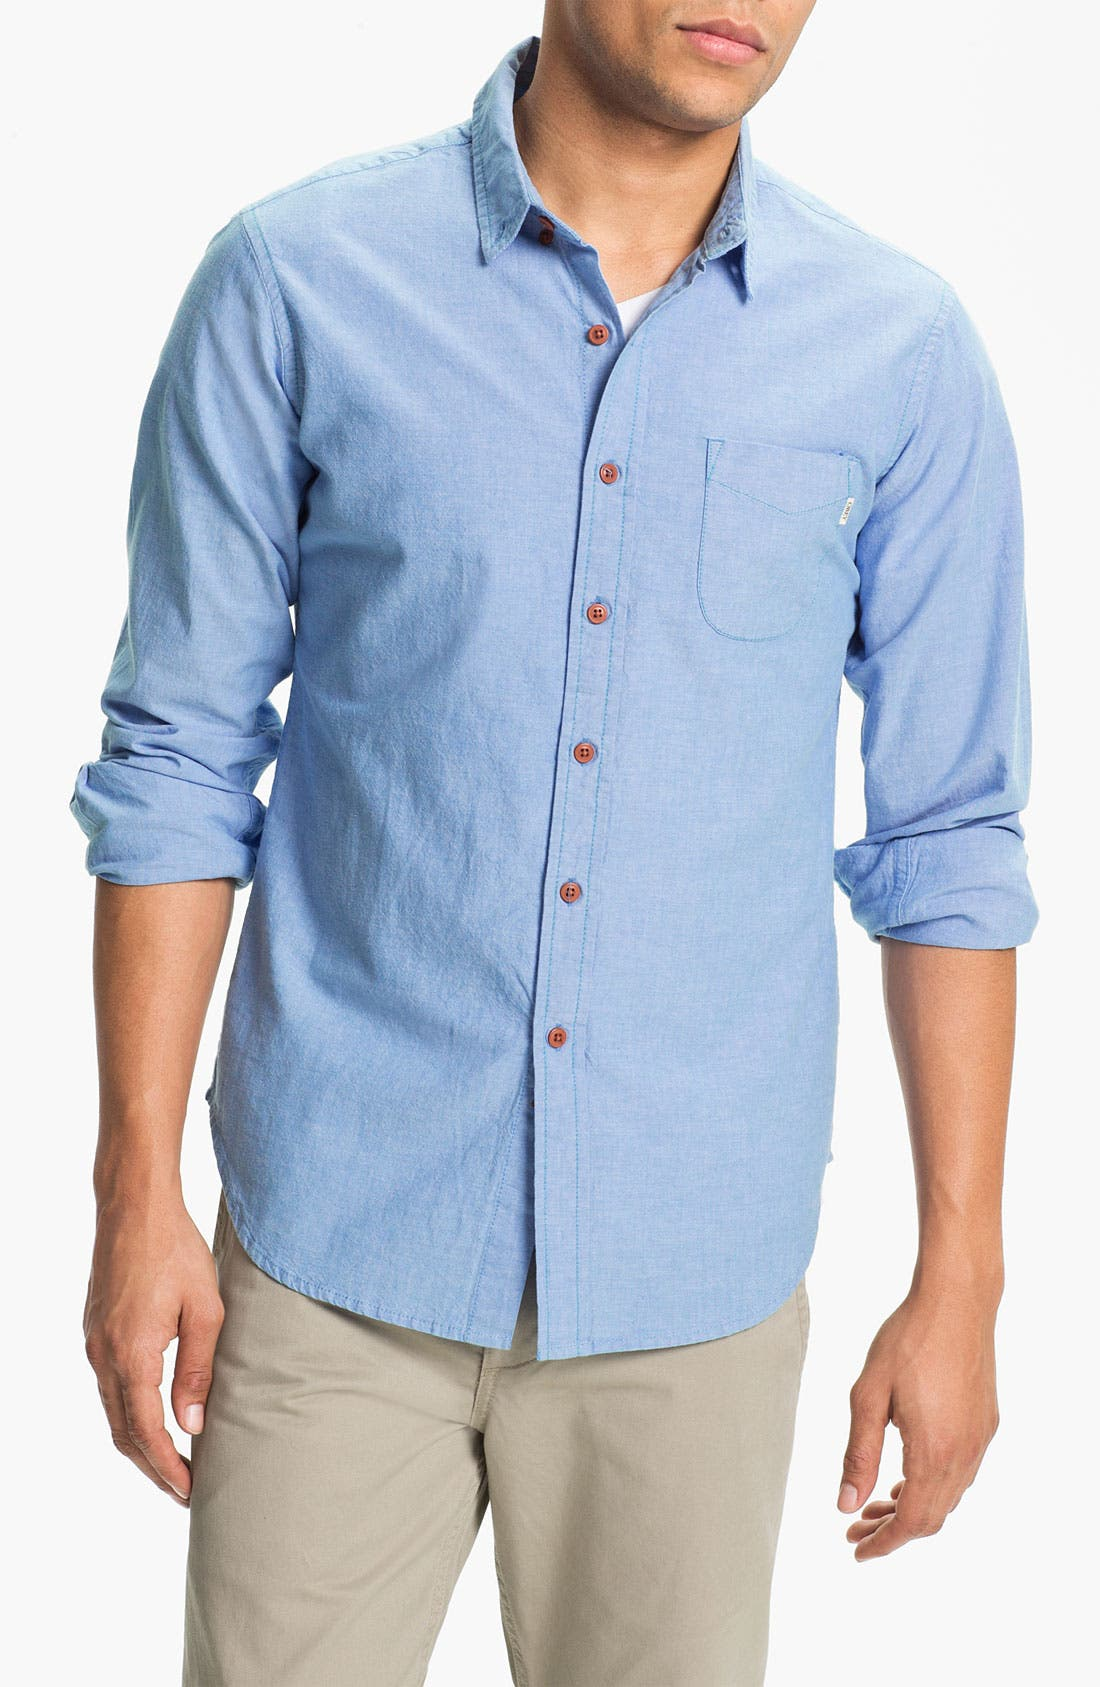 Alternate Image 1 Selected - Obey 'Elden' Oxford Shirt